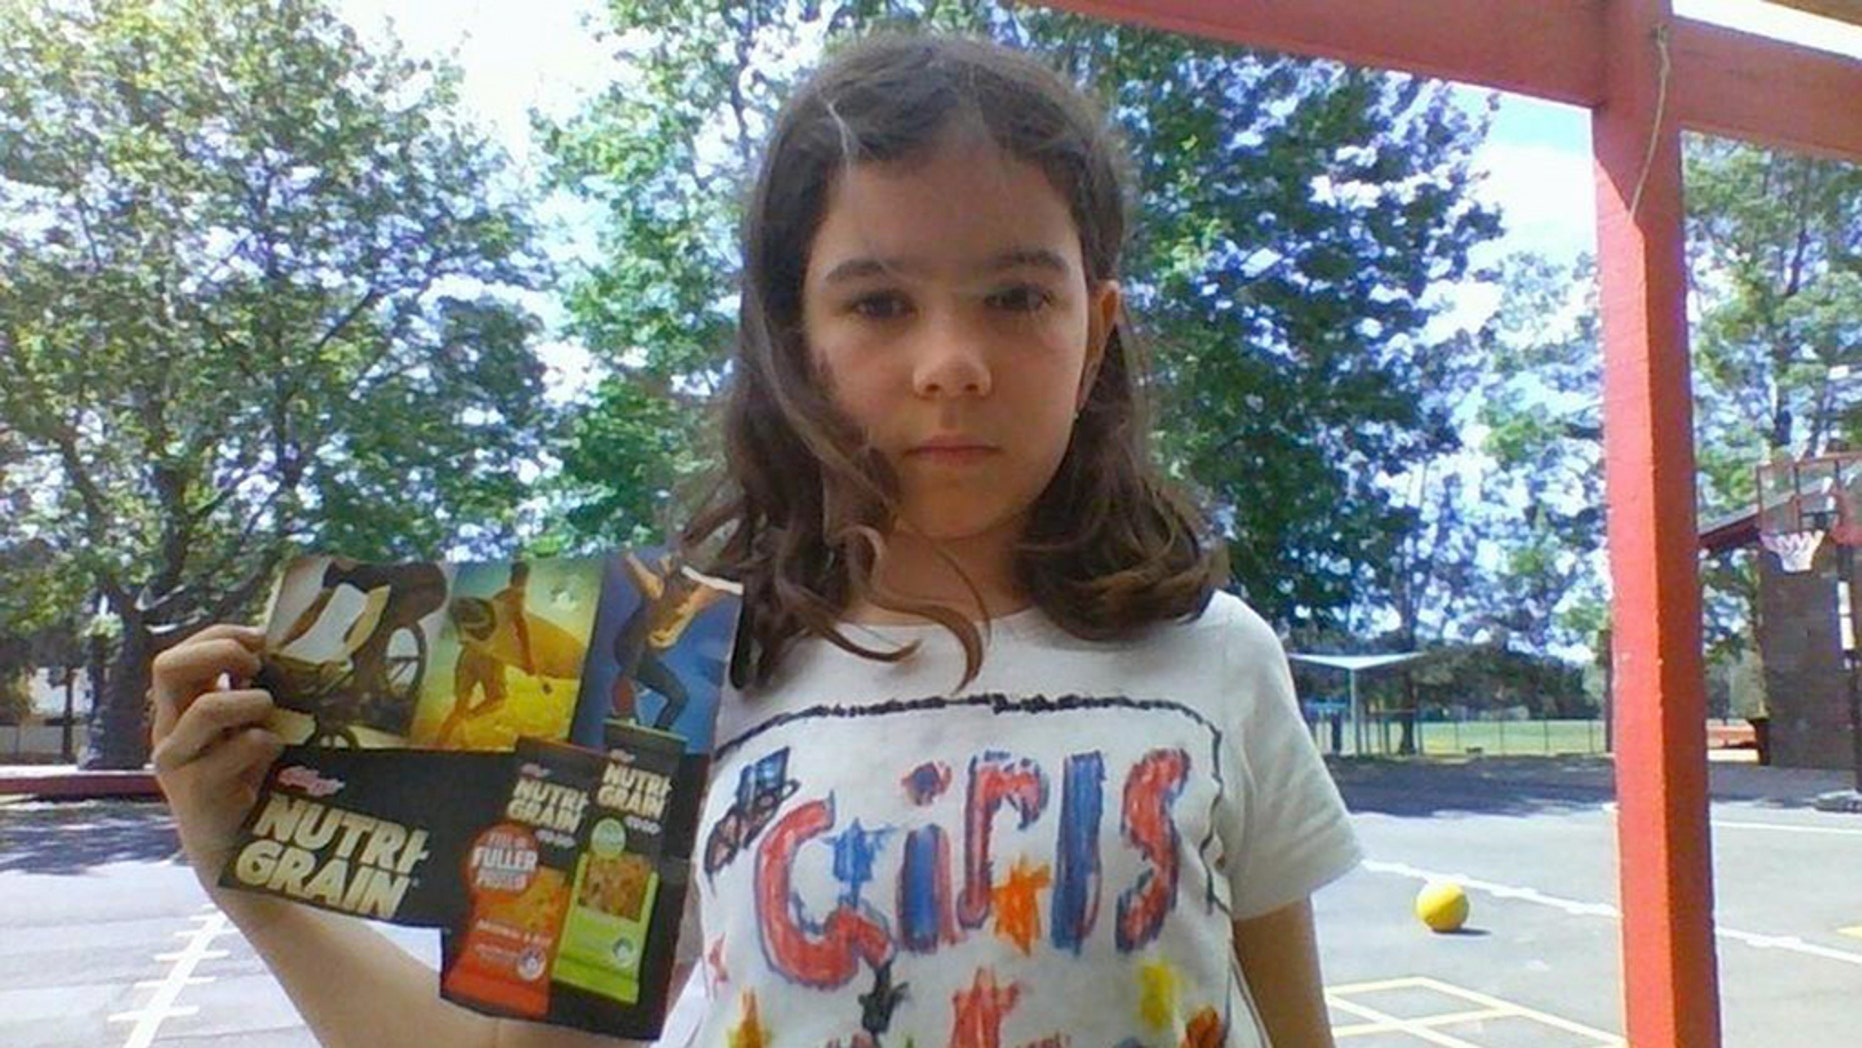 """An 8-year-old girl started a petition to get Kellogg's cereal to include girls as well as boys """"doing awesome things"""" on their boxes."""